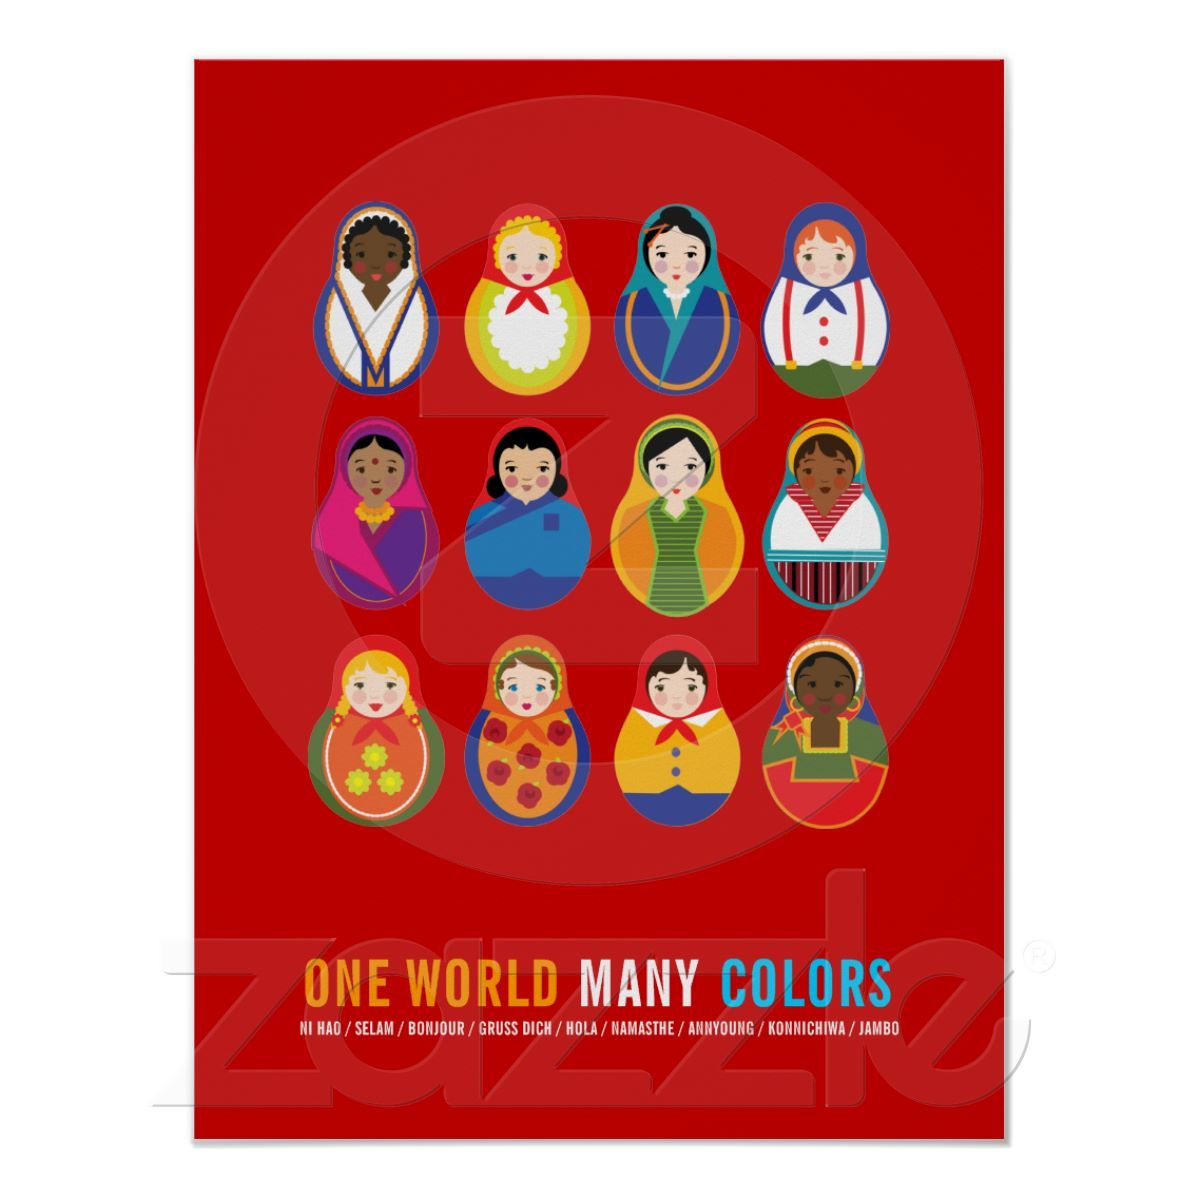 Celebrate Culture & Diversity World Color Poster